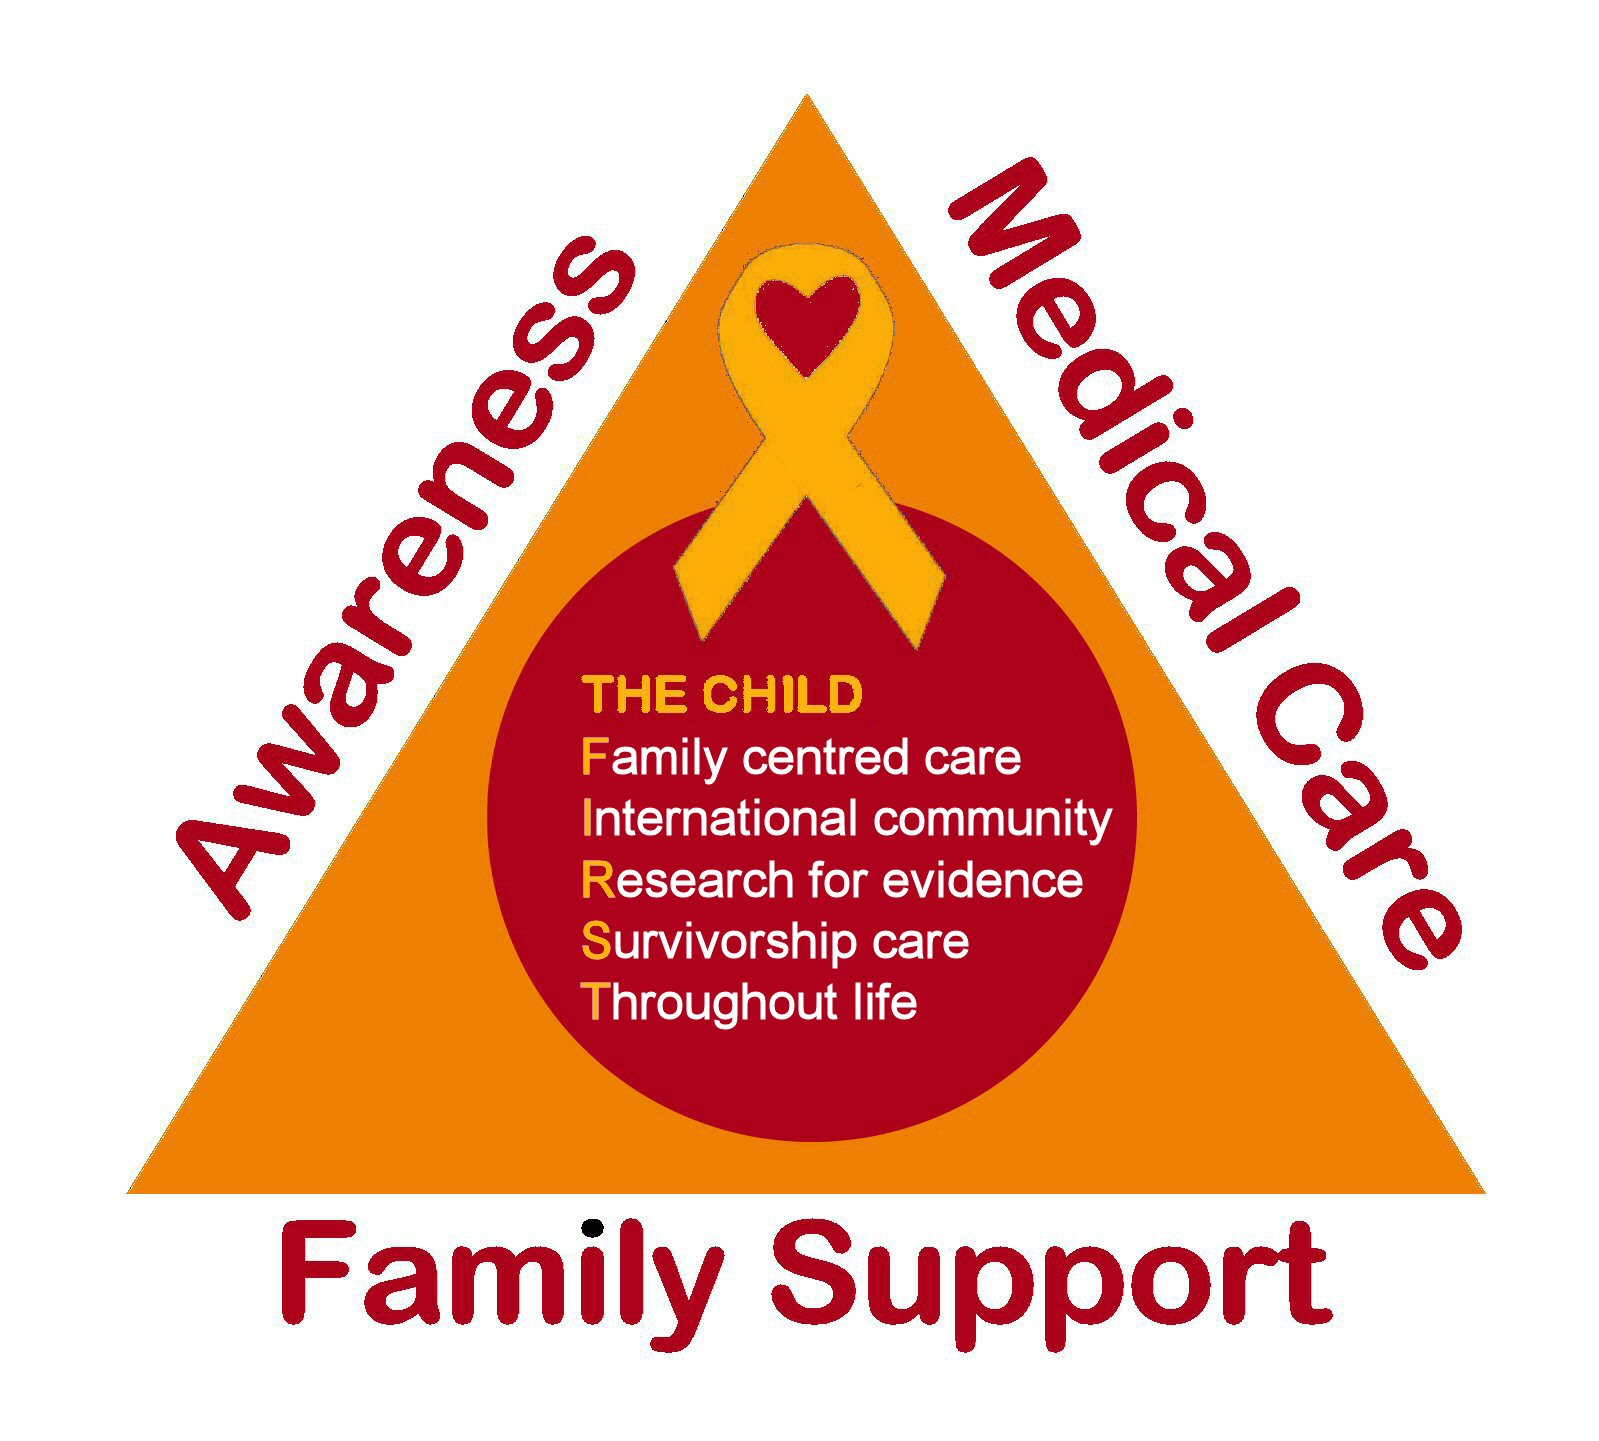 "A diagram in WE C Hope branded colours shows an equilateral triangle pointing upwards. Along the left side is the word ""awareness"". Along the right side are the words ""medical care"". Along the bottom line are the words ""Family Support"". Overlaying the triangle, at the top is a gold ribbon with a red love heart in the ribbon's loop. Below, in the centre of the triangle is a circle with a title and 5 lines creating an acrostic that forms the phrase ""THE CHILD FIRST"". Text reads: The Child; Family centred care; International community; Research for evidence; Survivorship care; Throughout life""."